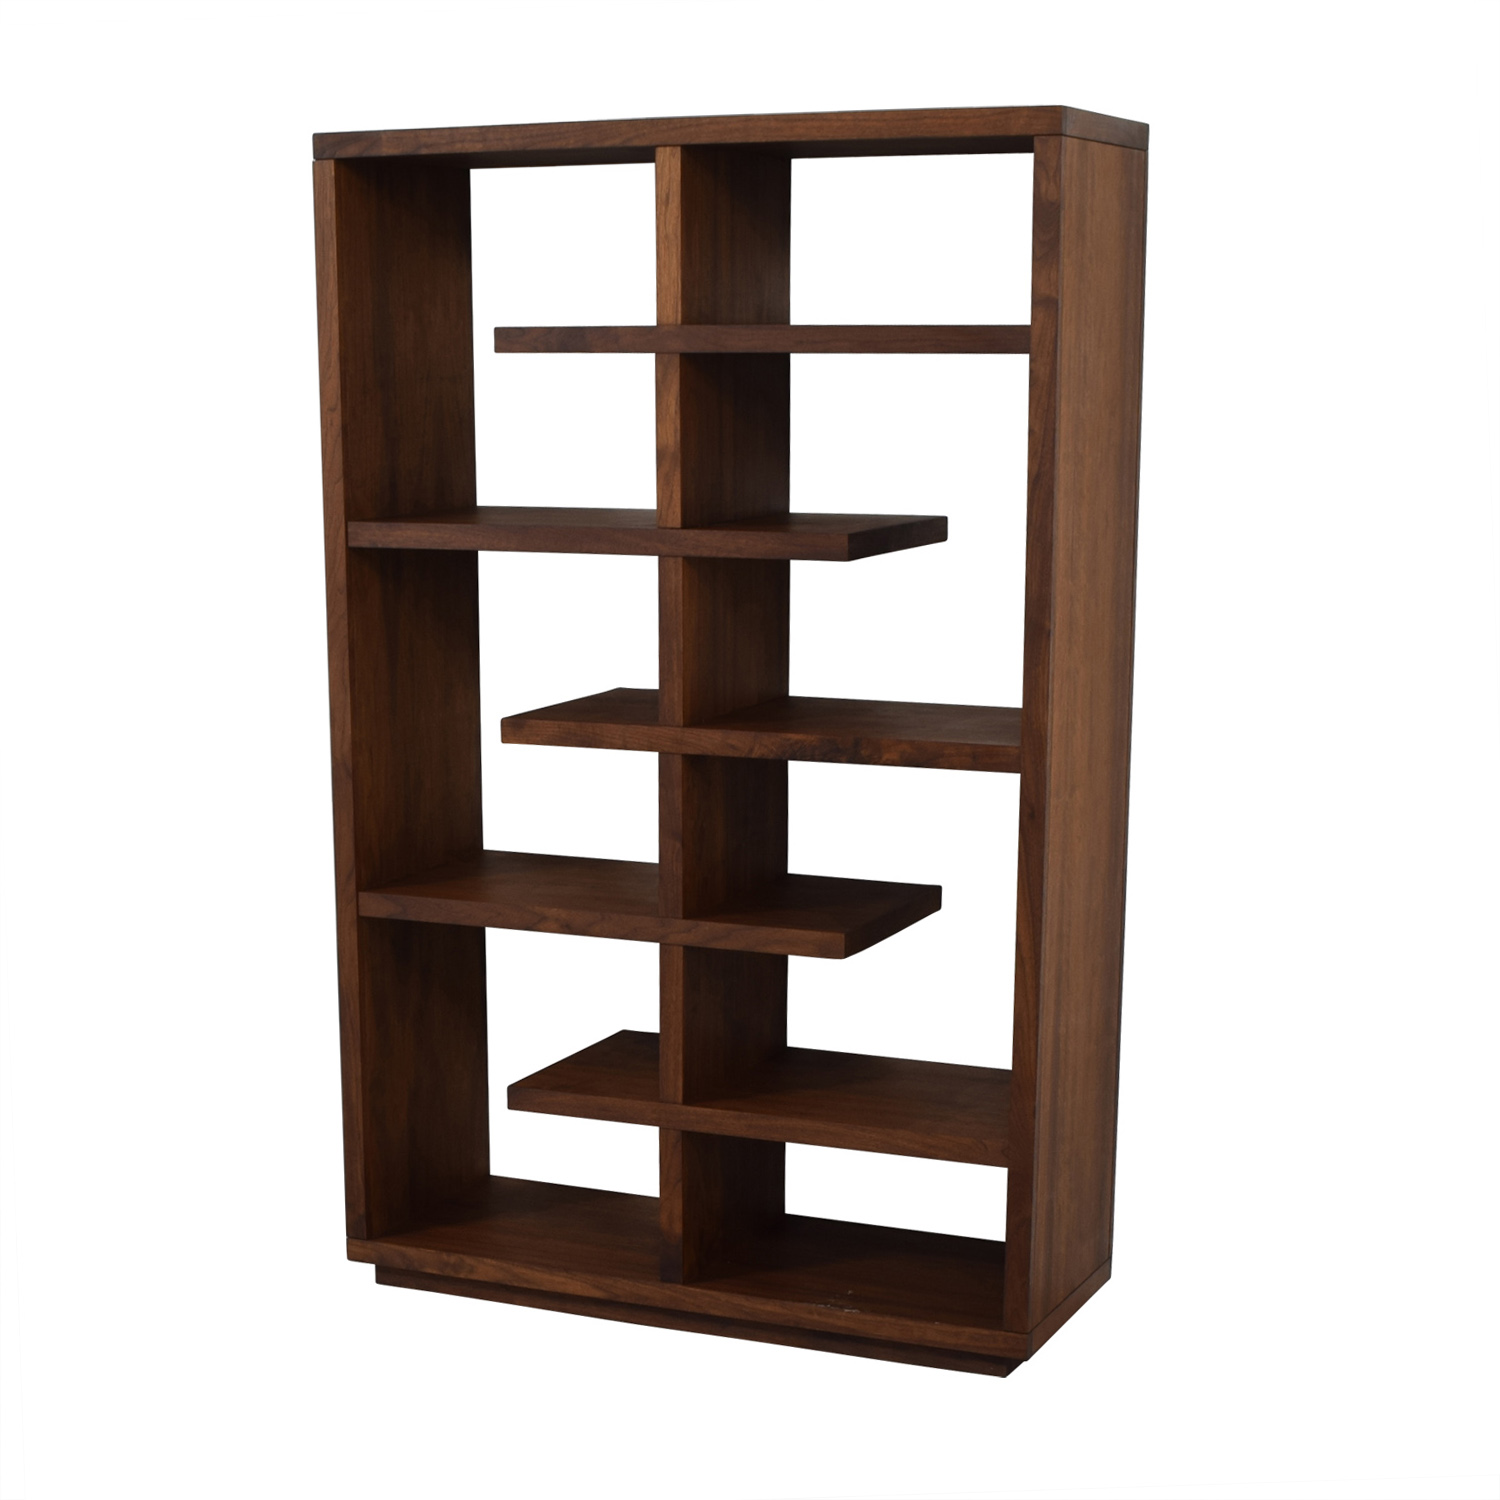 Buy Crate & Barrel Crate & Barrel Elevate Walnut Bookcase